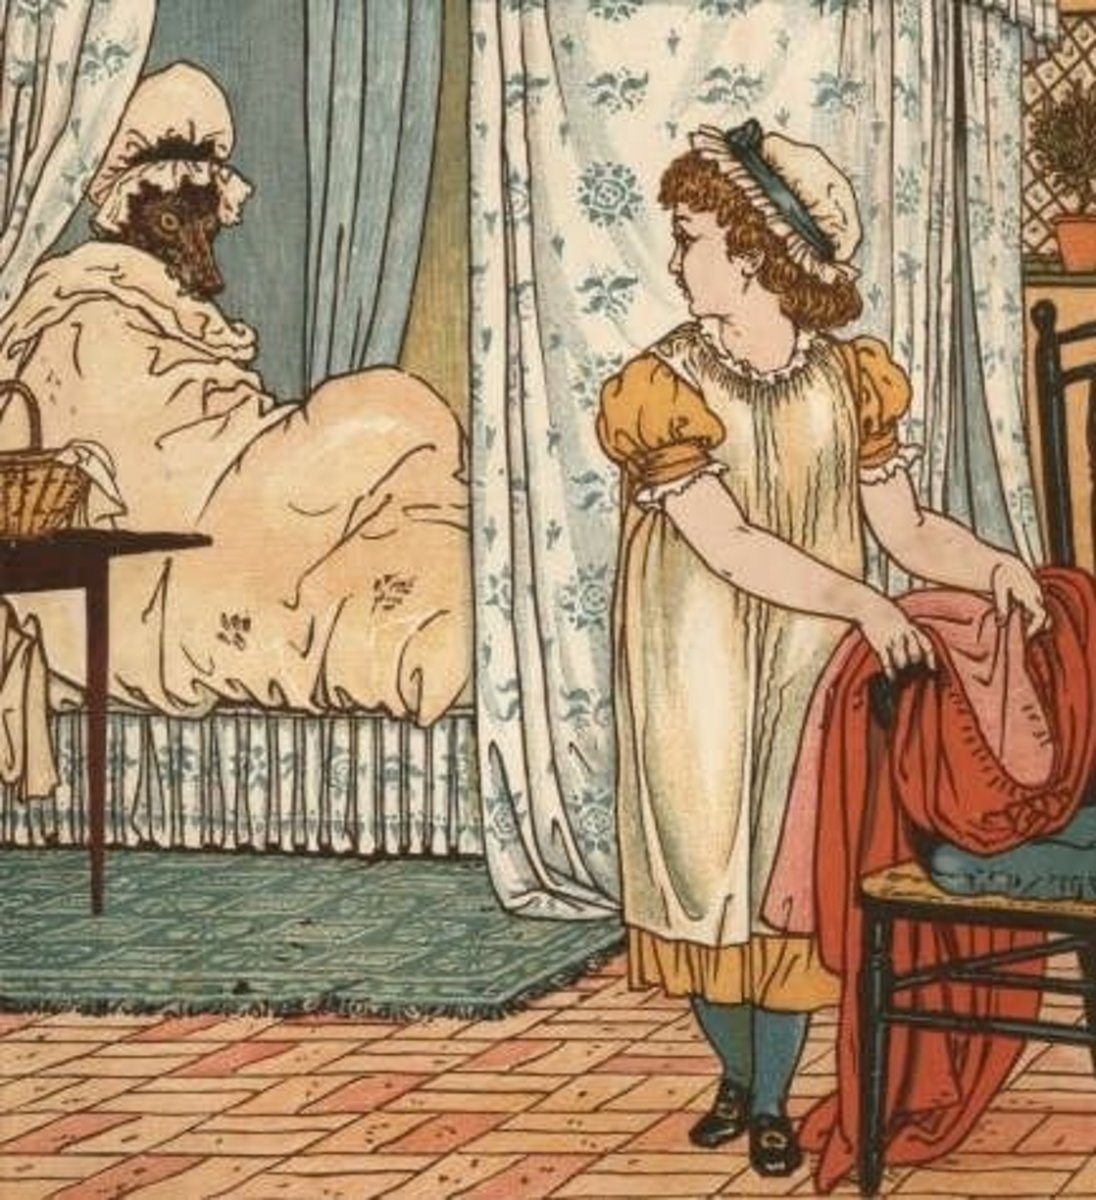 In This Illustration by Walter Crane Little Red Riding Hood Flirts With the Big Bad Wolf...source: Wikipedia.org, PD licence